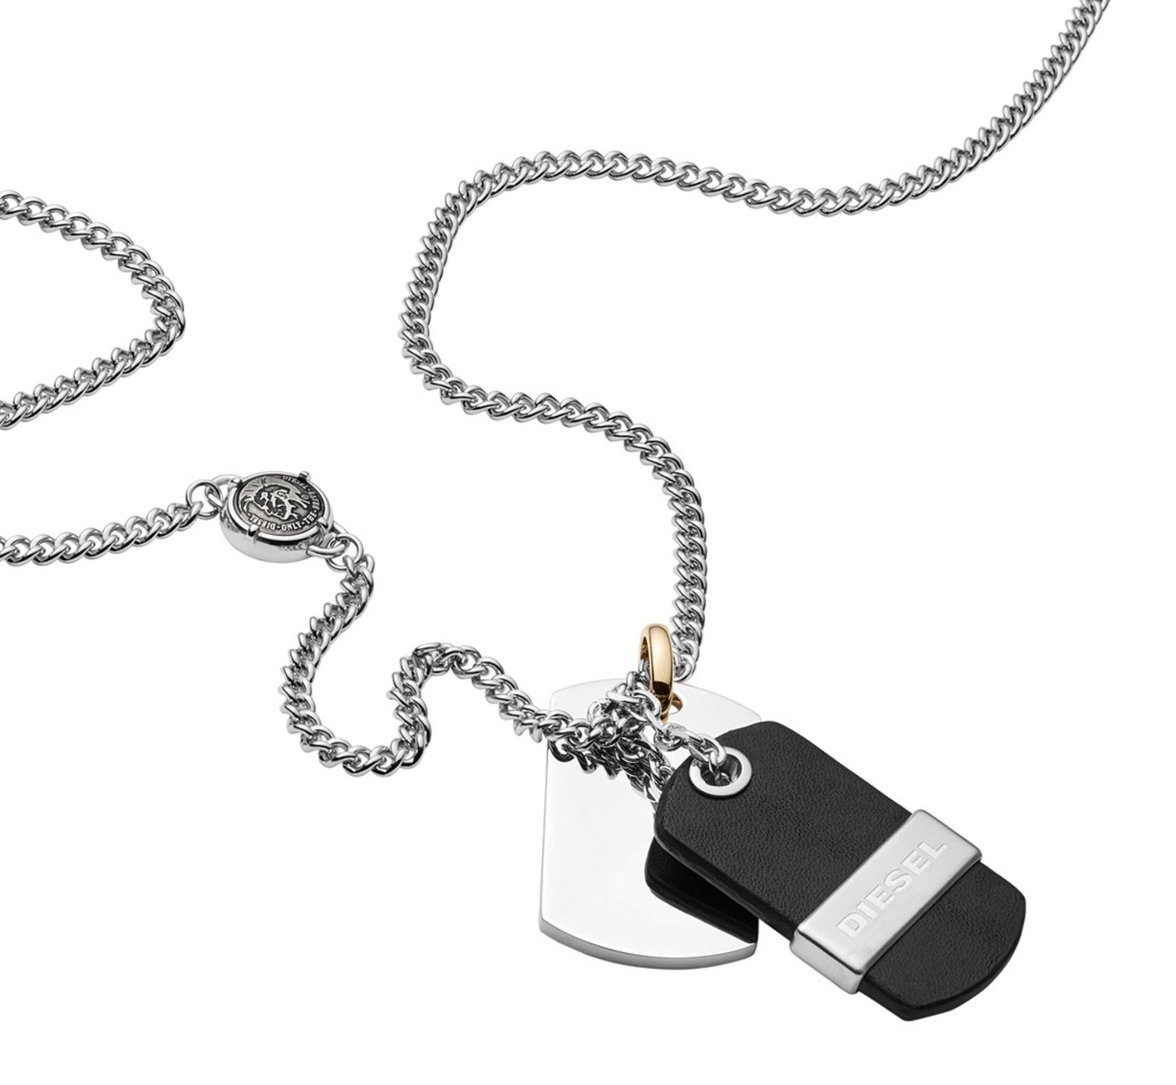 Diesel Men's Stainless Steel & Leather Double Dog Tag Necklace DX1084040 with Gift Box $95